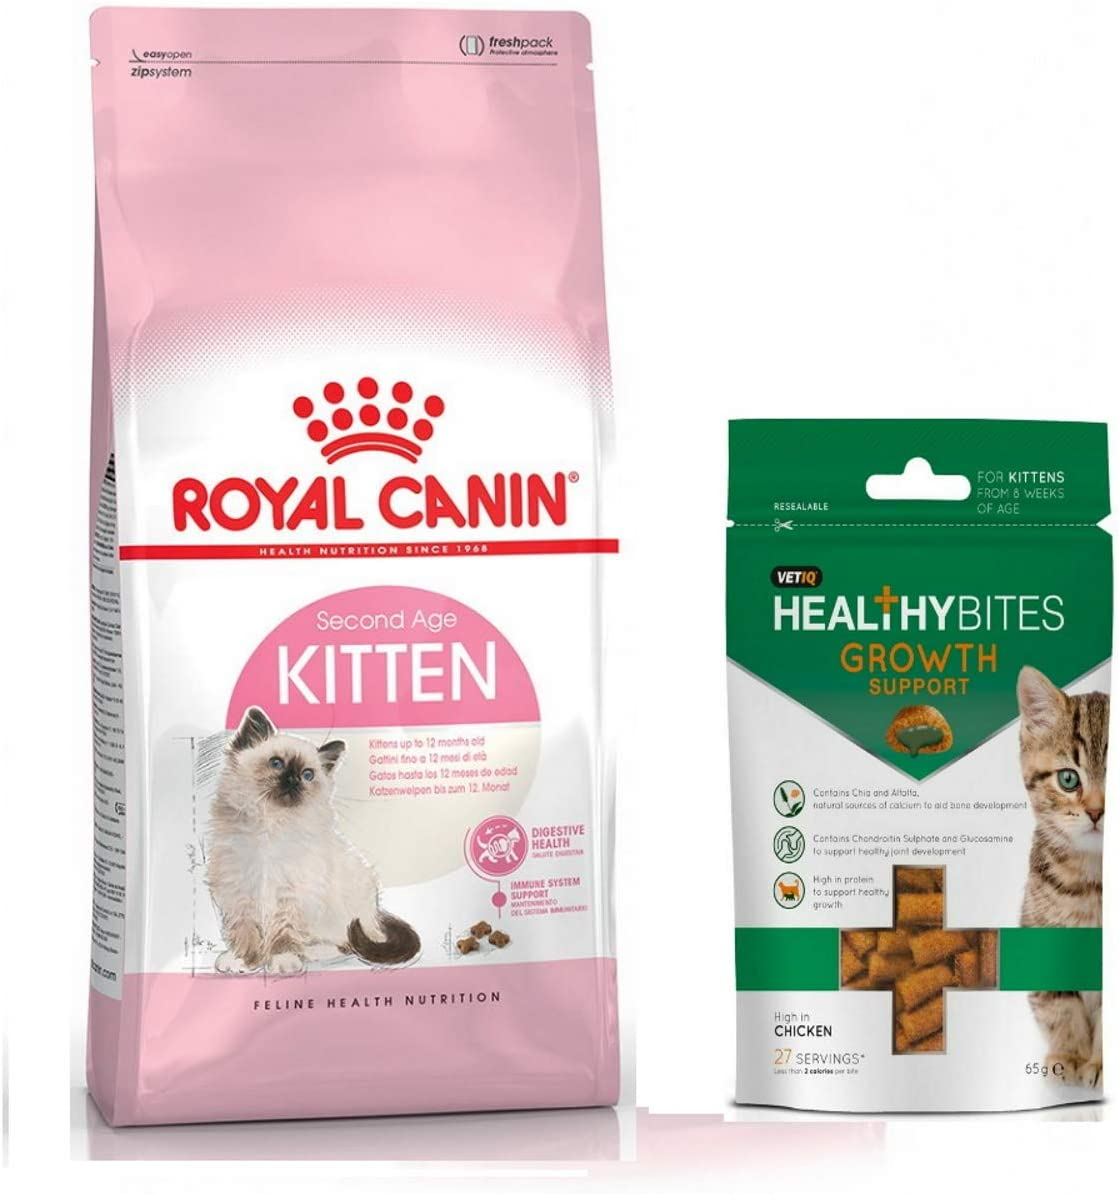 Royal Canin Second Age Kitten Dry Food 400 Gr And Kitten Treats Growth Support Amazon Co Uk Pet Supplies